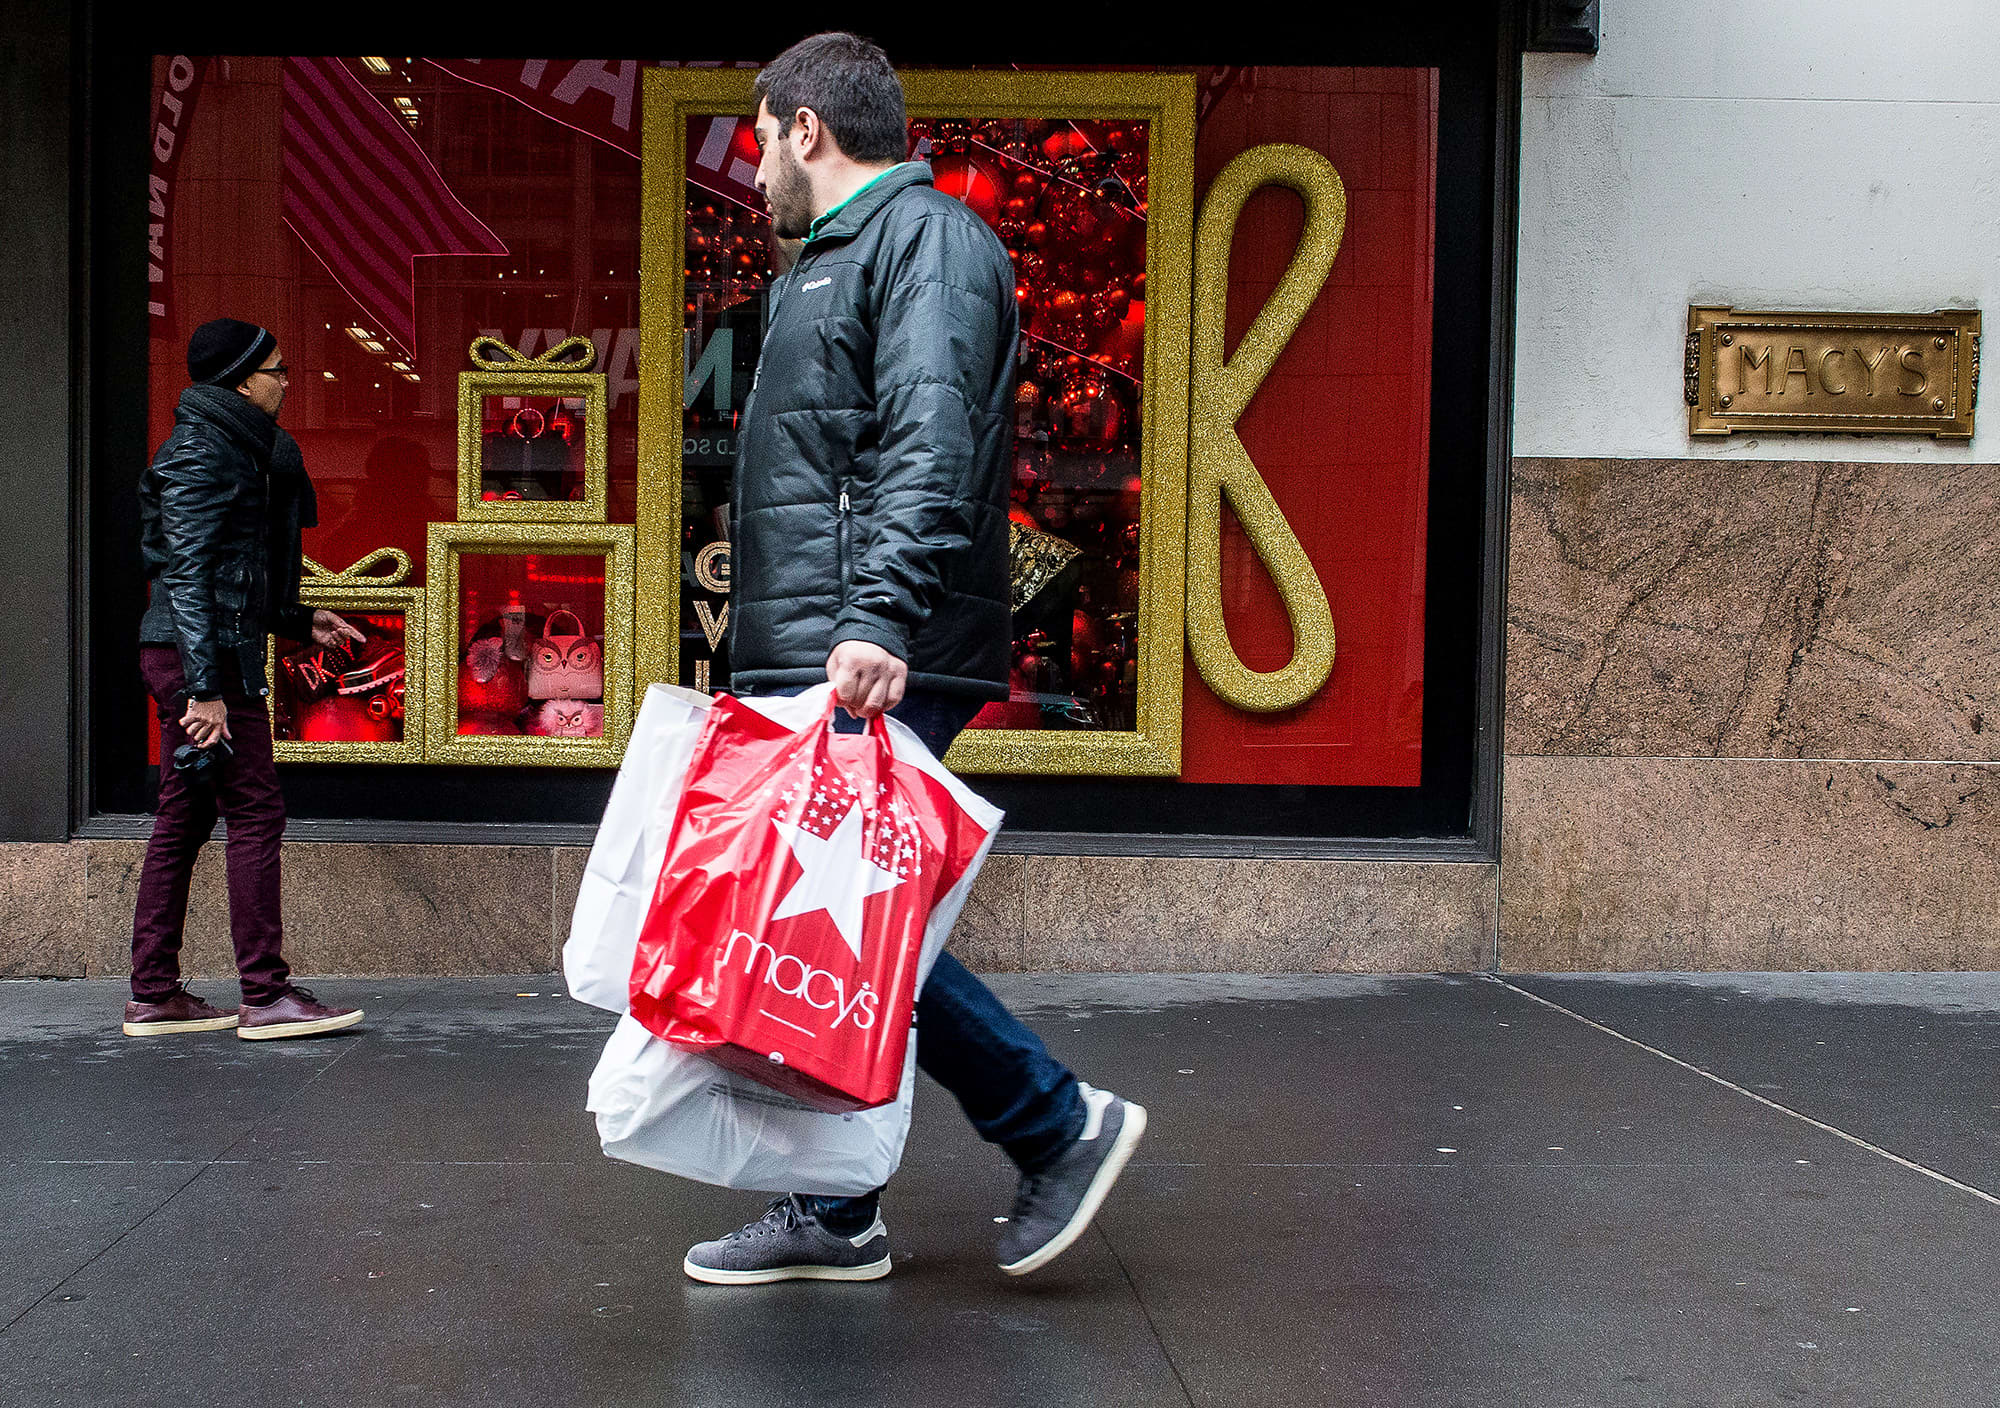 Macy's shares fall on sales miss, retailer slashes outlook